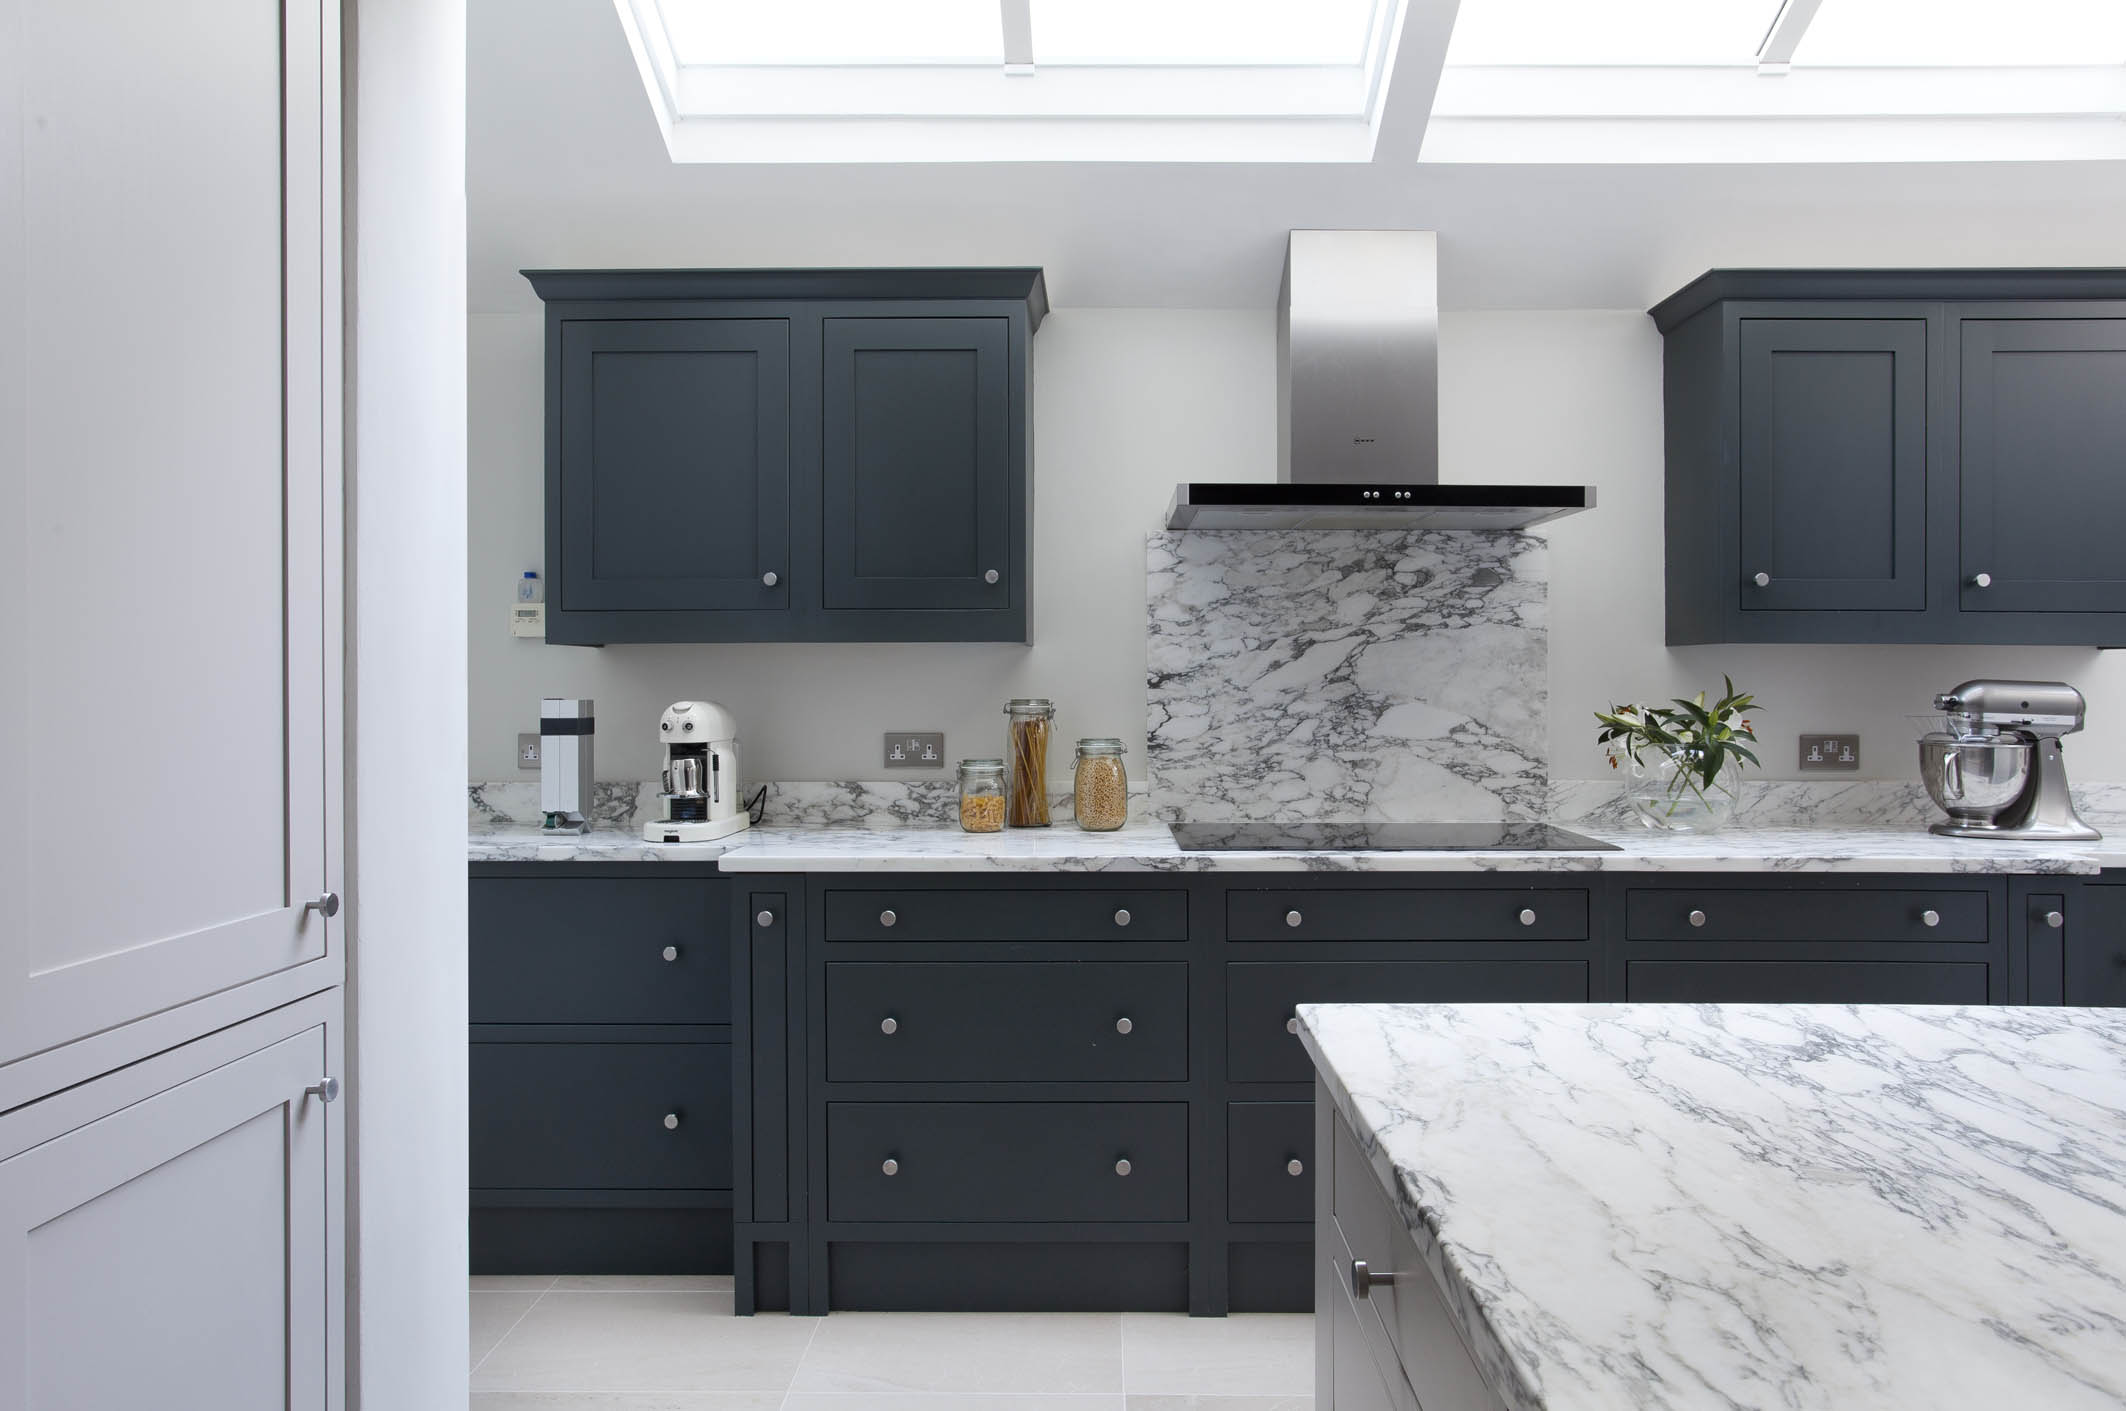 solid wood kitchen island faucet diverter farrow & ball downpipe and purbeck stone kitchen, blackrock